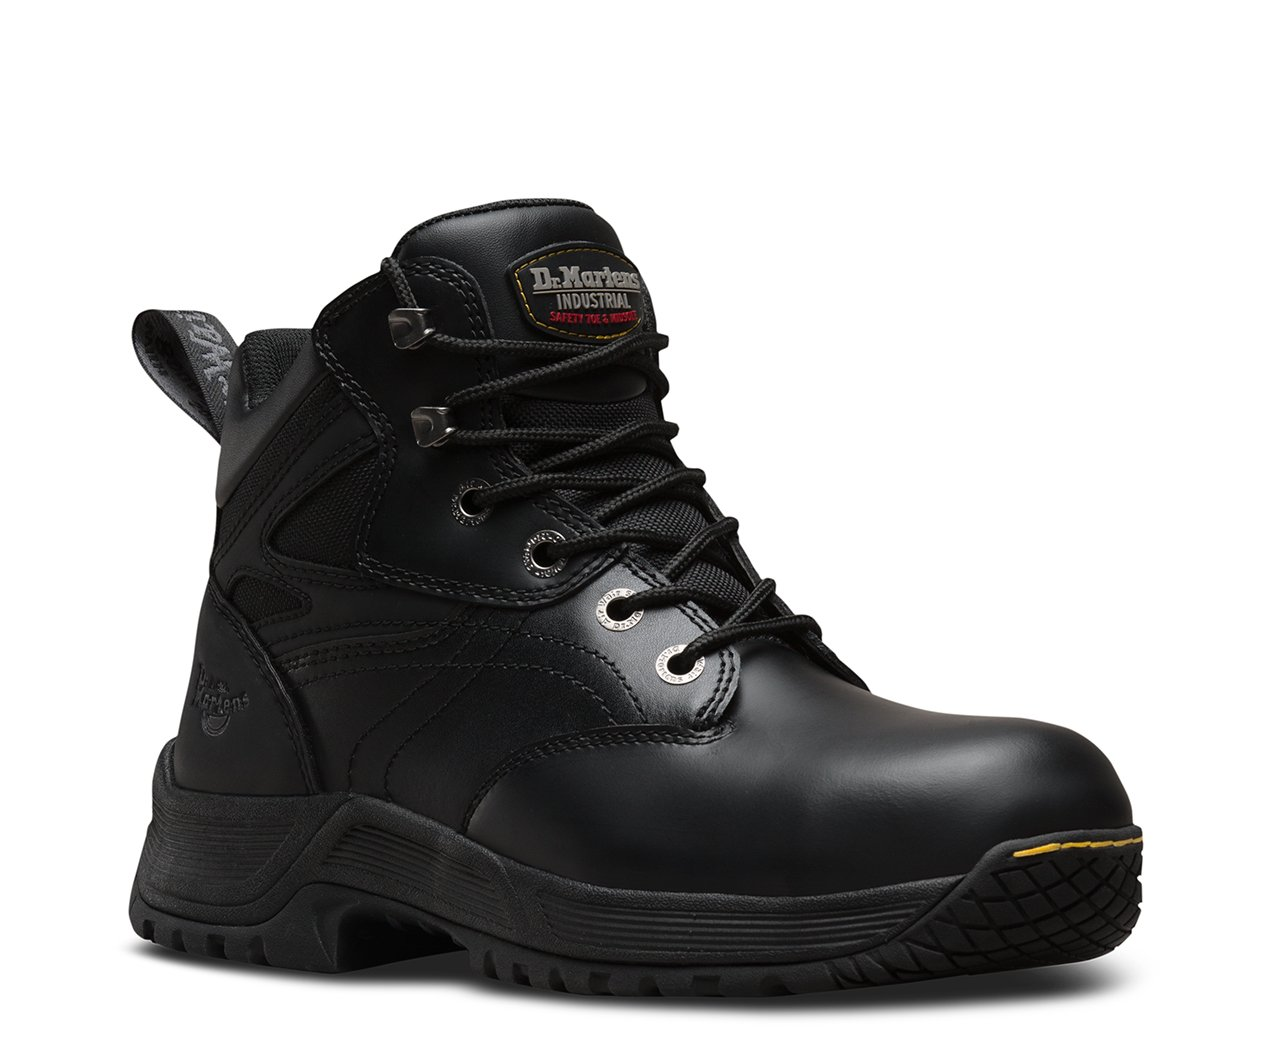 Dr Martens Torness Safety Boots Dr Martens Safety Boots